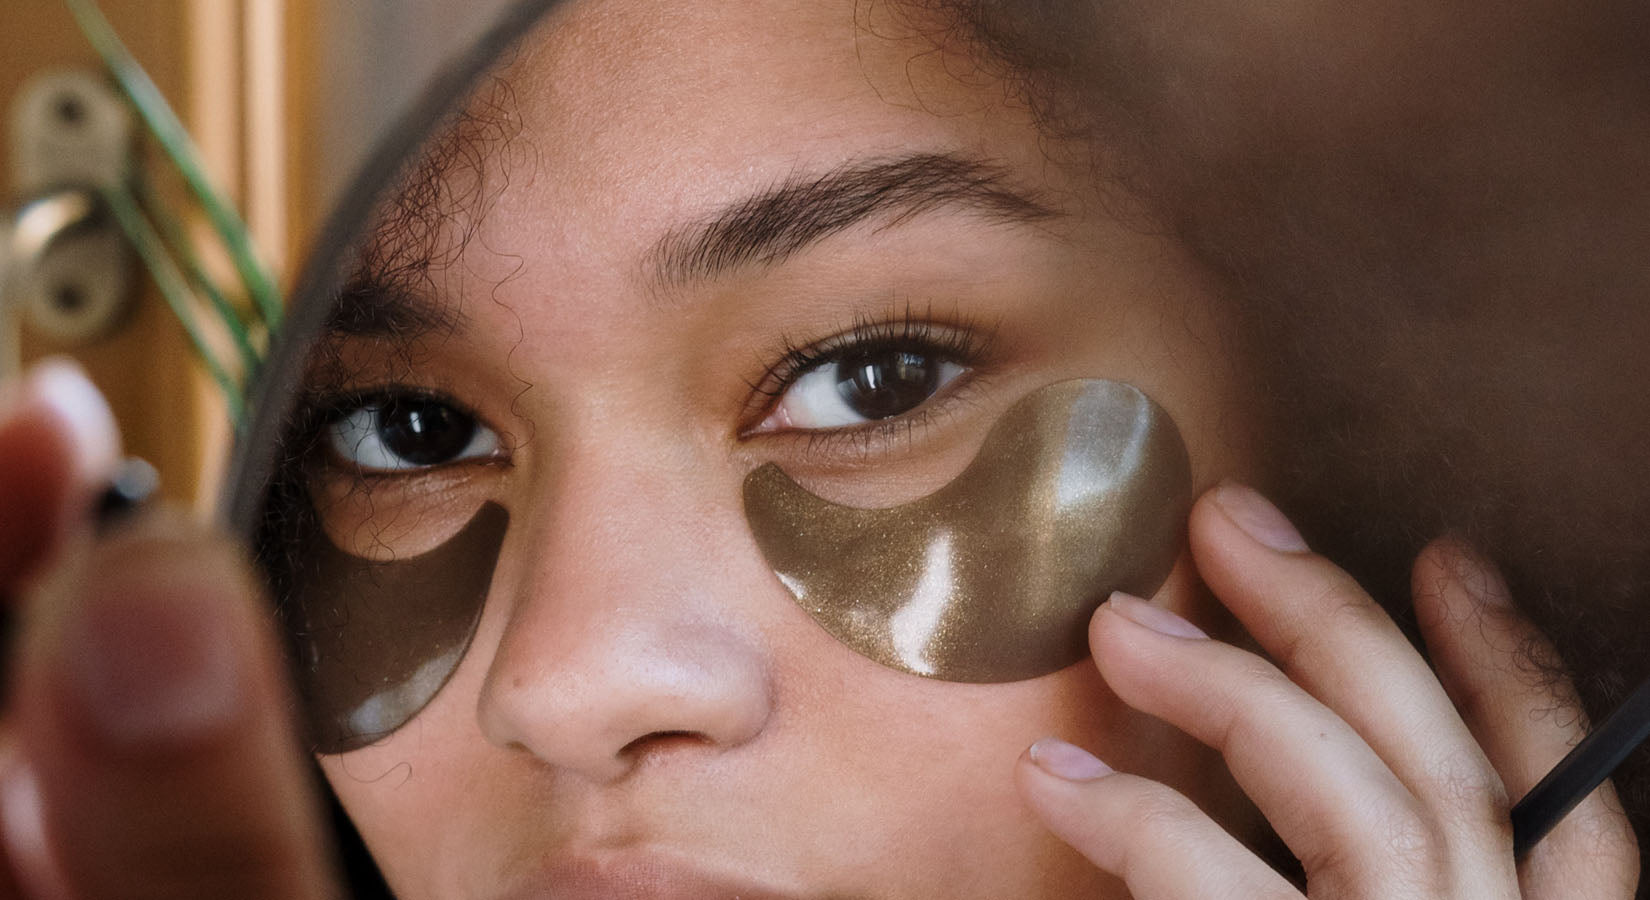 Eye Care and Eye Creams are often skipped in beauty routines but they are a must in the Korean Skincare routine.